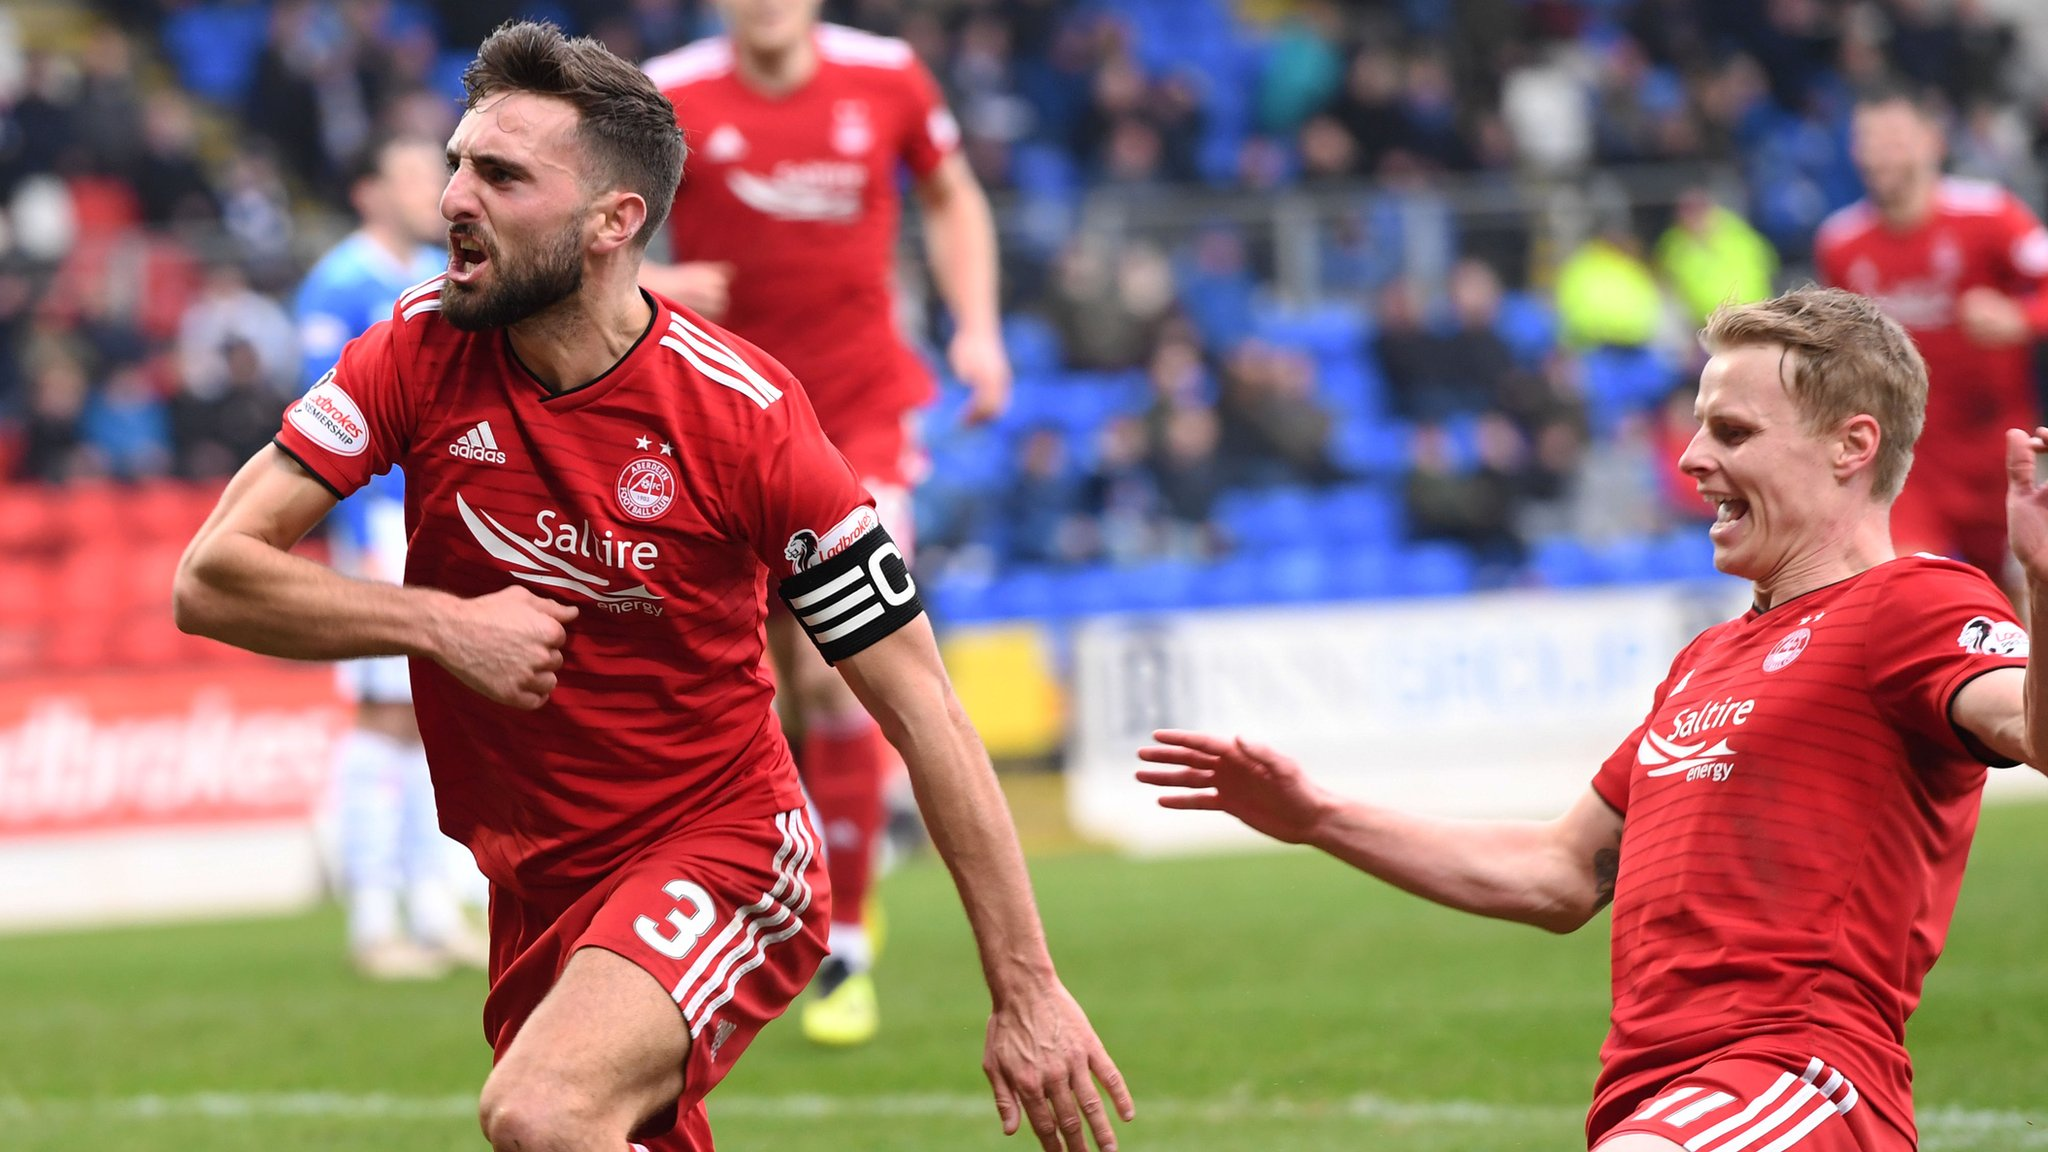 St Johnstone 0-2 Aberdeen: Shinnie double extends hosts' winless run to seven